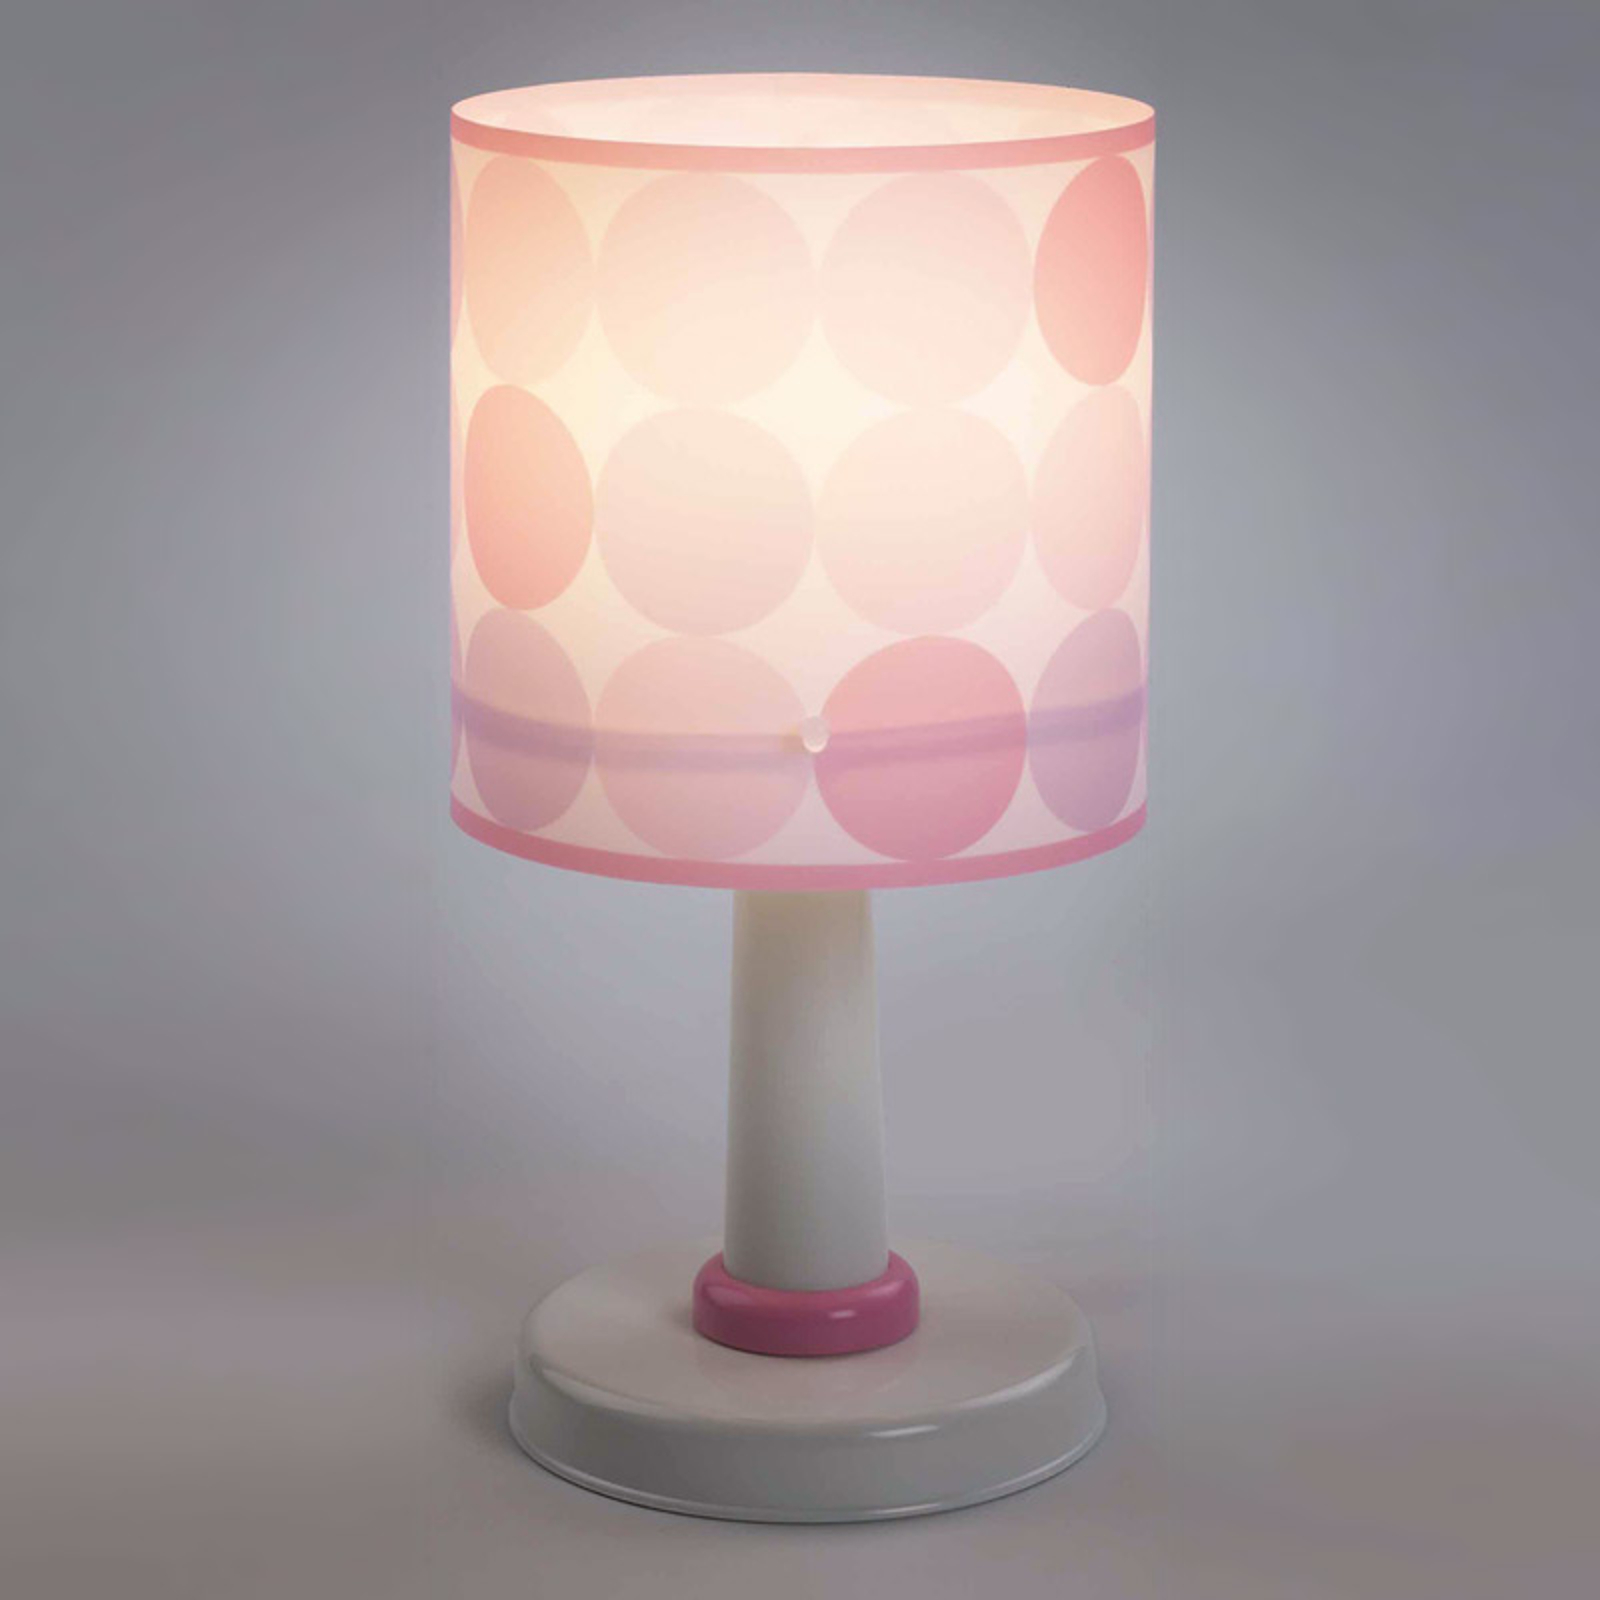 Colors - dotted table light in pink_2507307_1